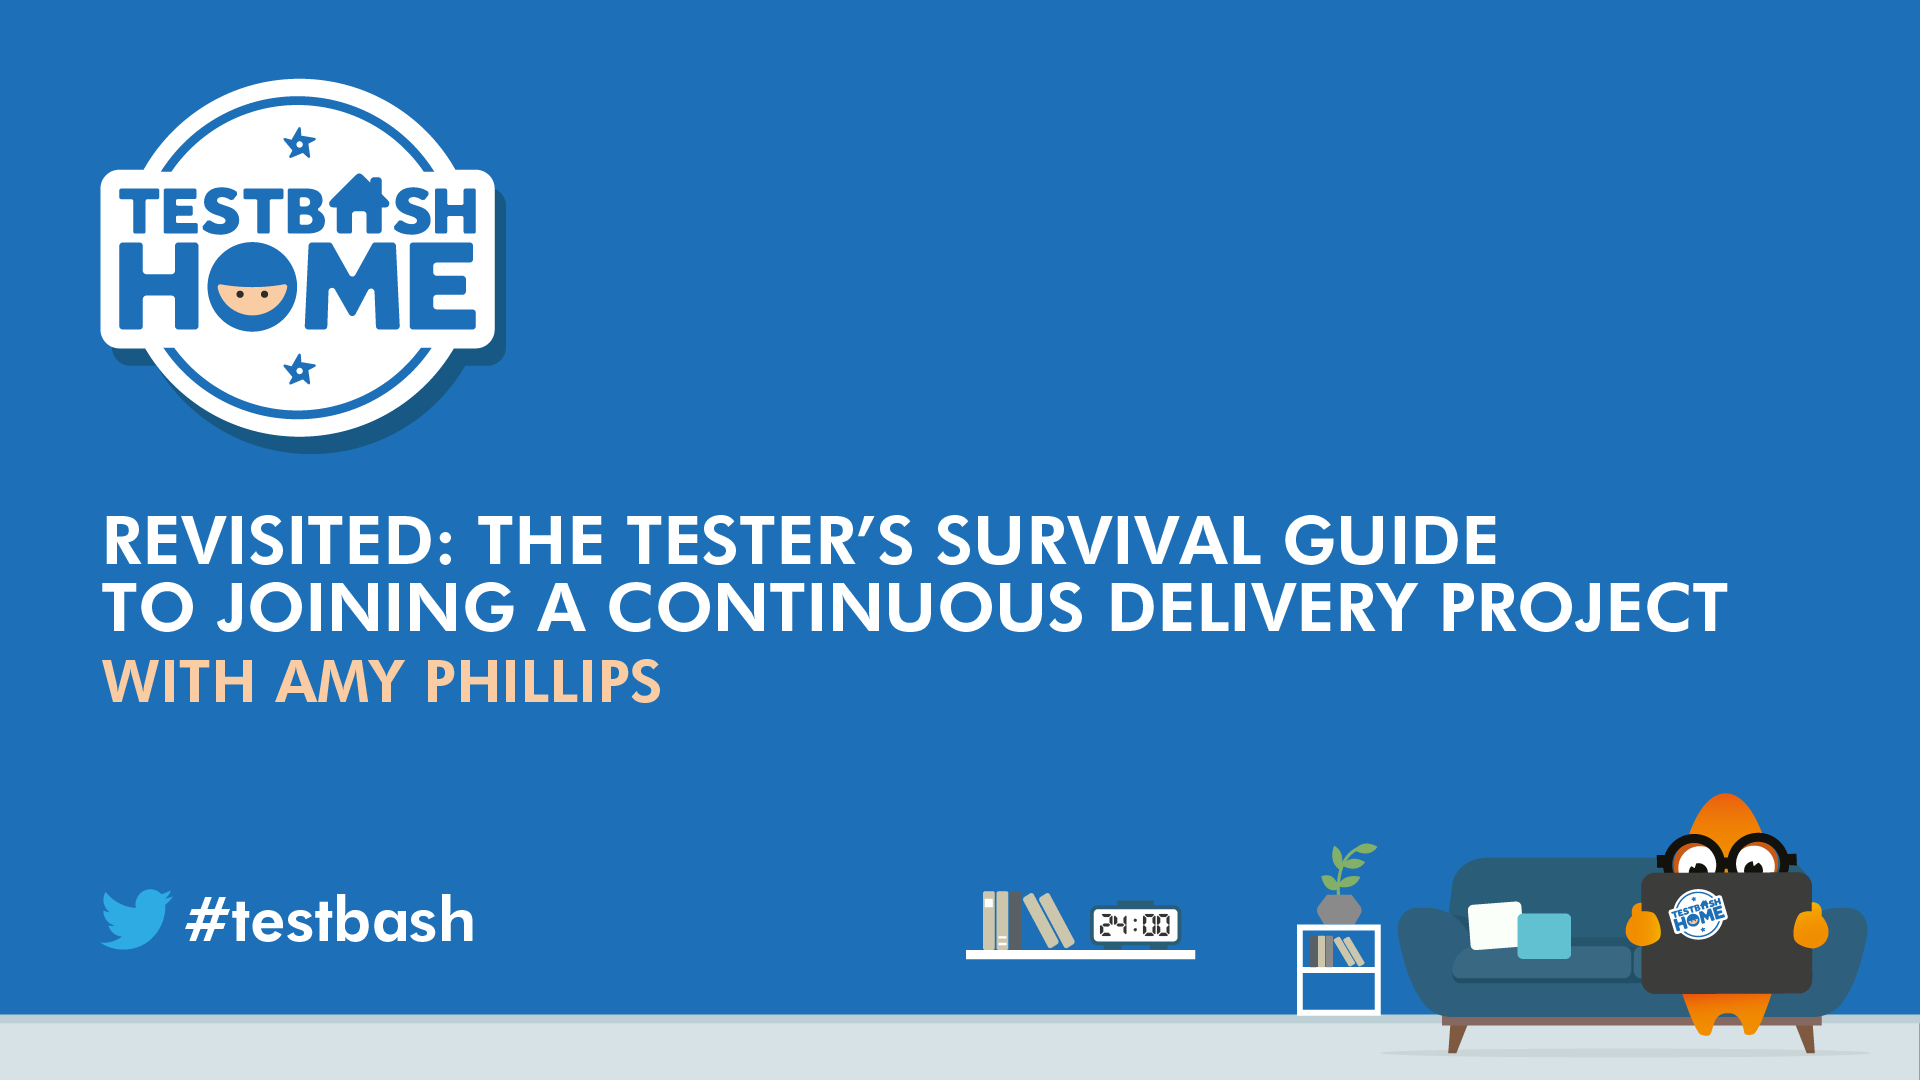 Revisited: The Tester's Survival Guide to Joining a Continuous Delivery Project - Amy Phillips